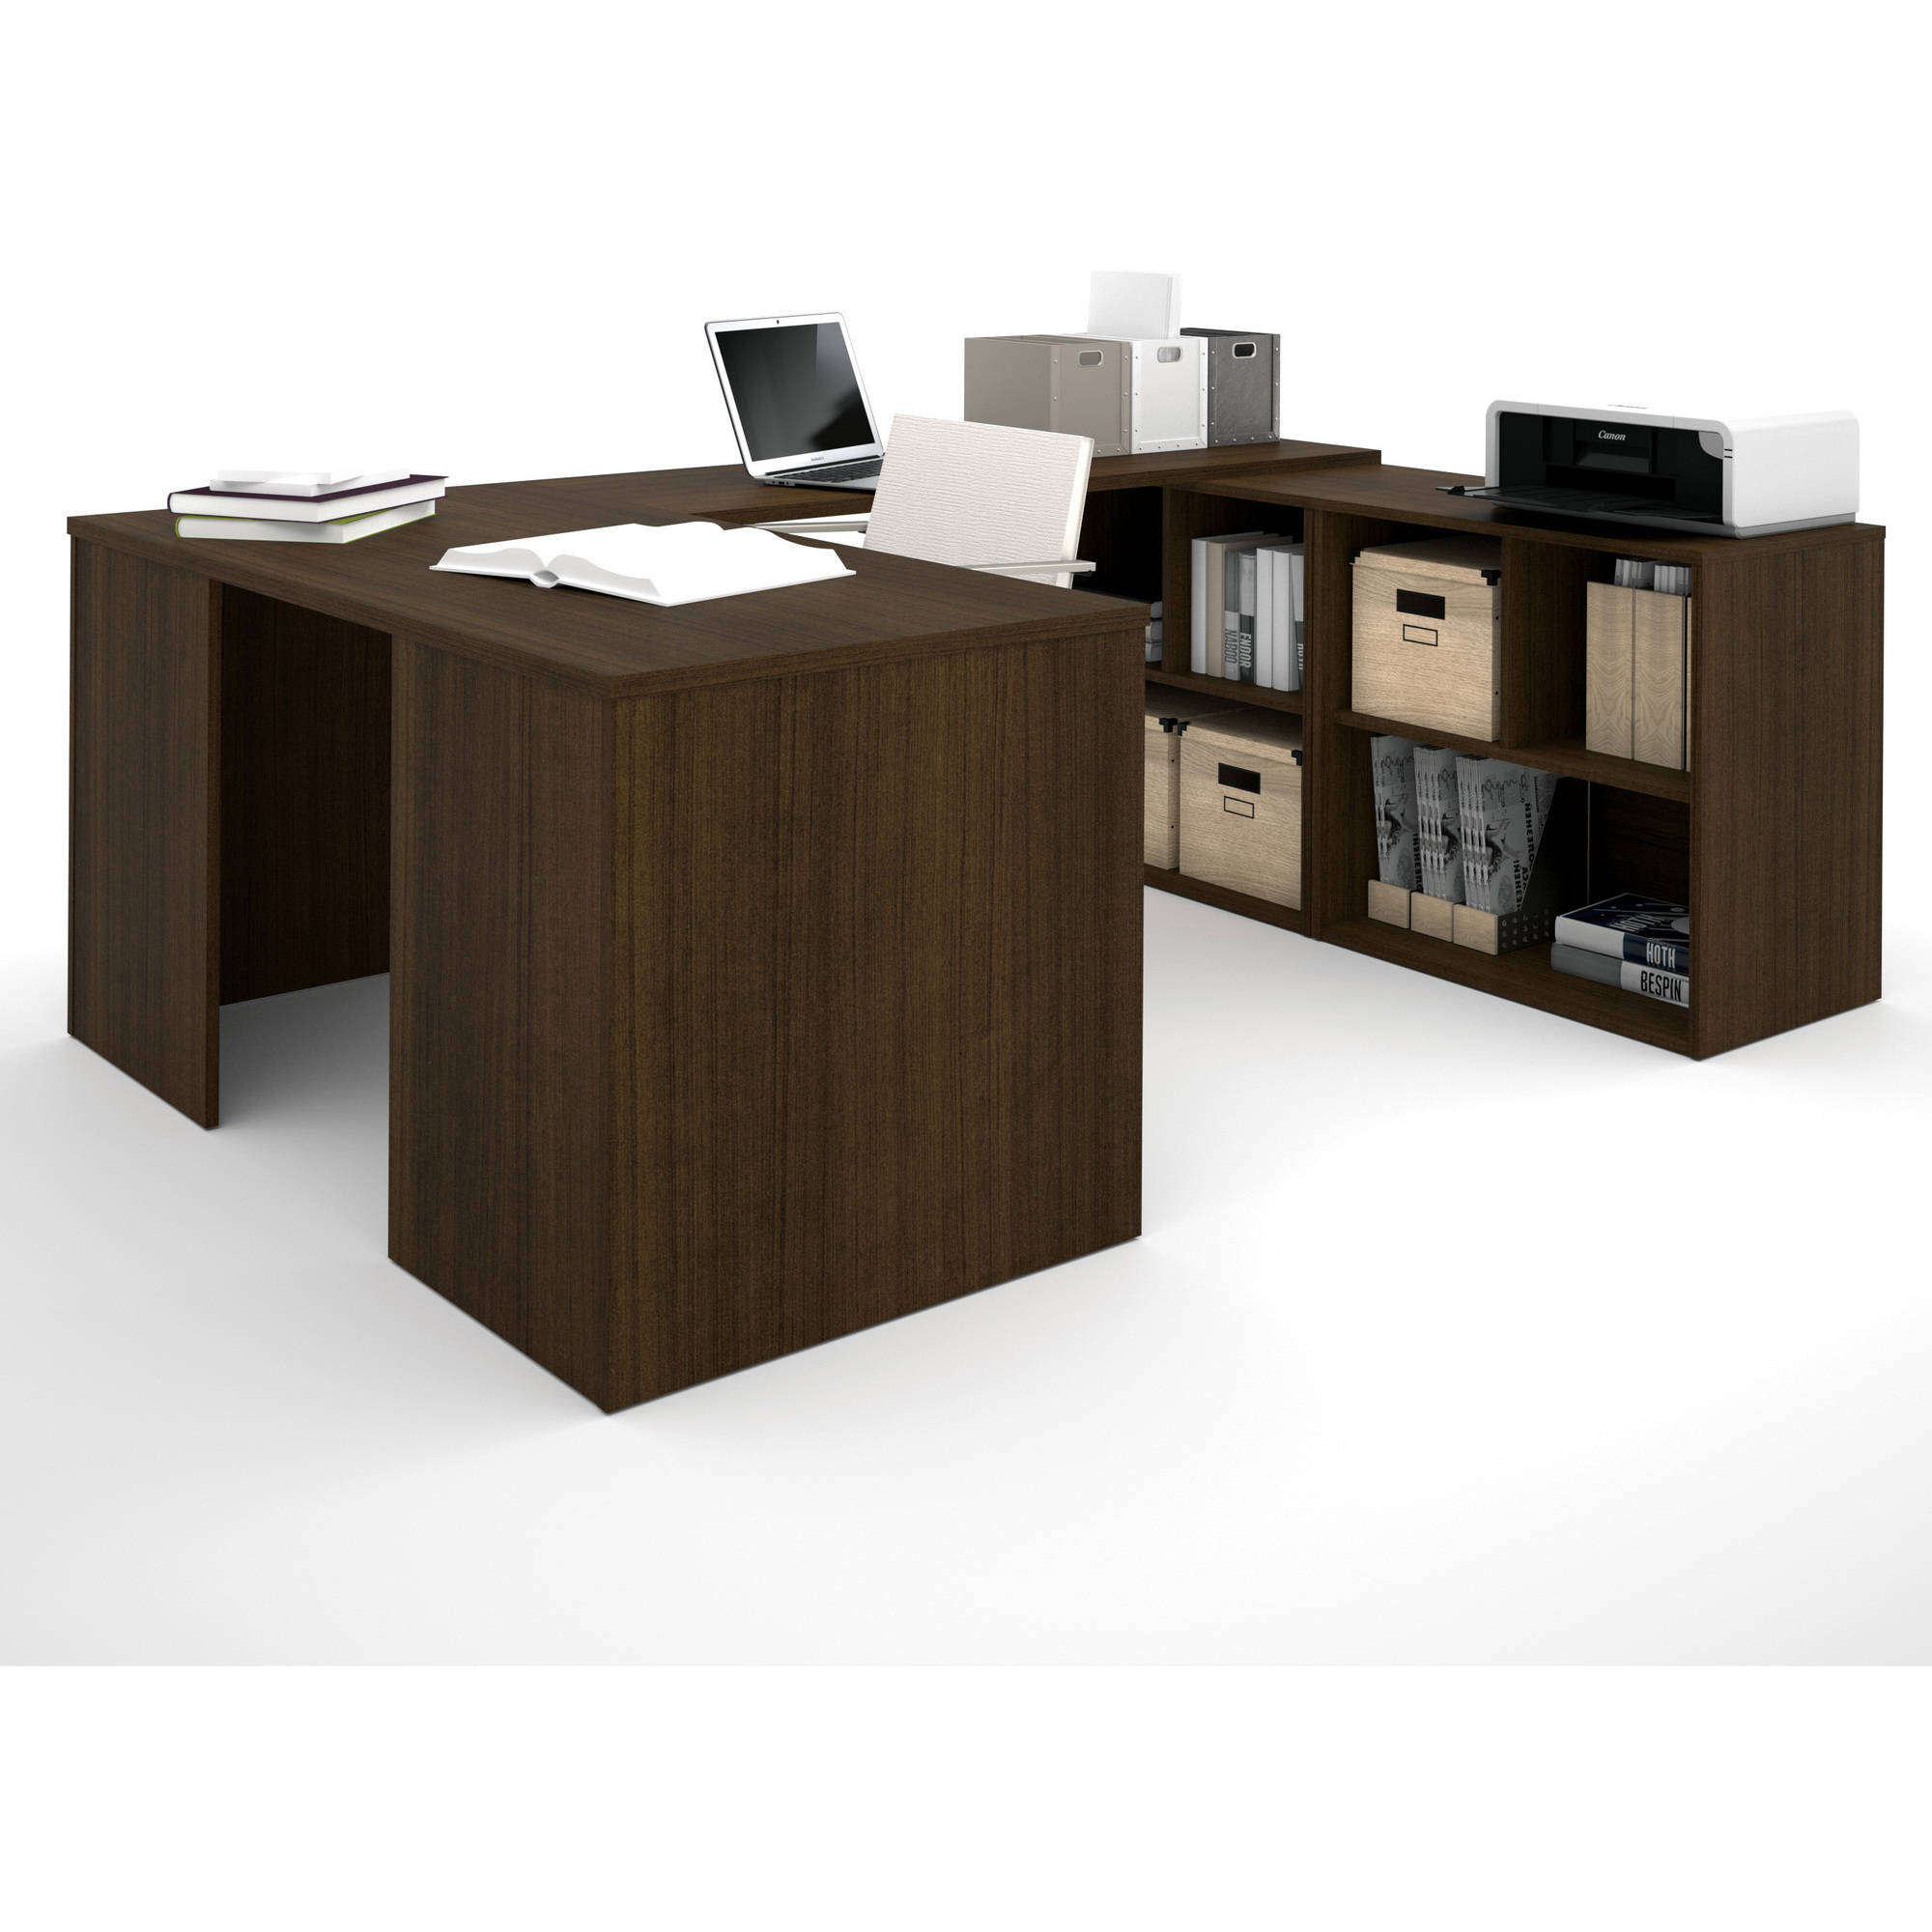 Bestar i3 by Bestar U-Shaped Desk, Tuxedo